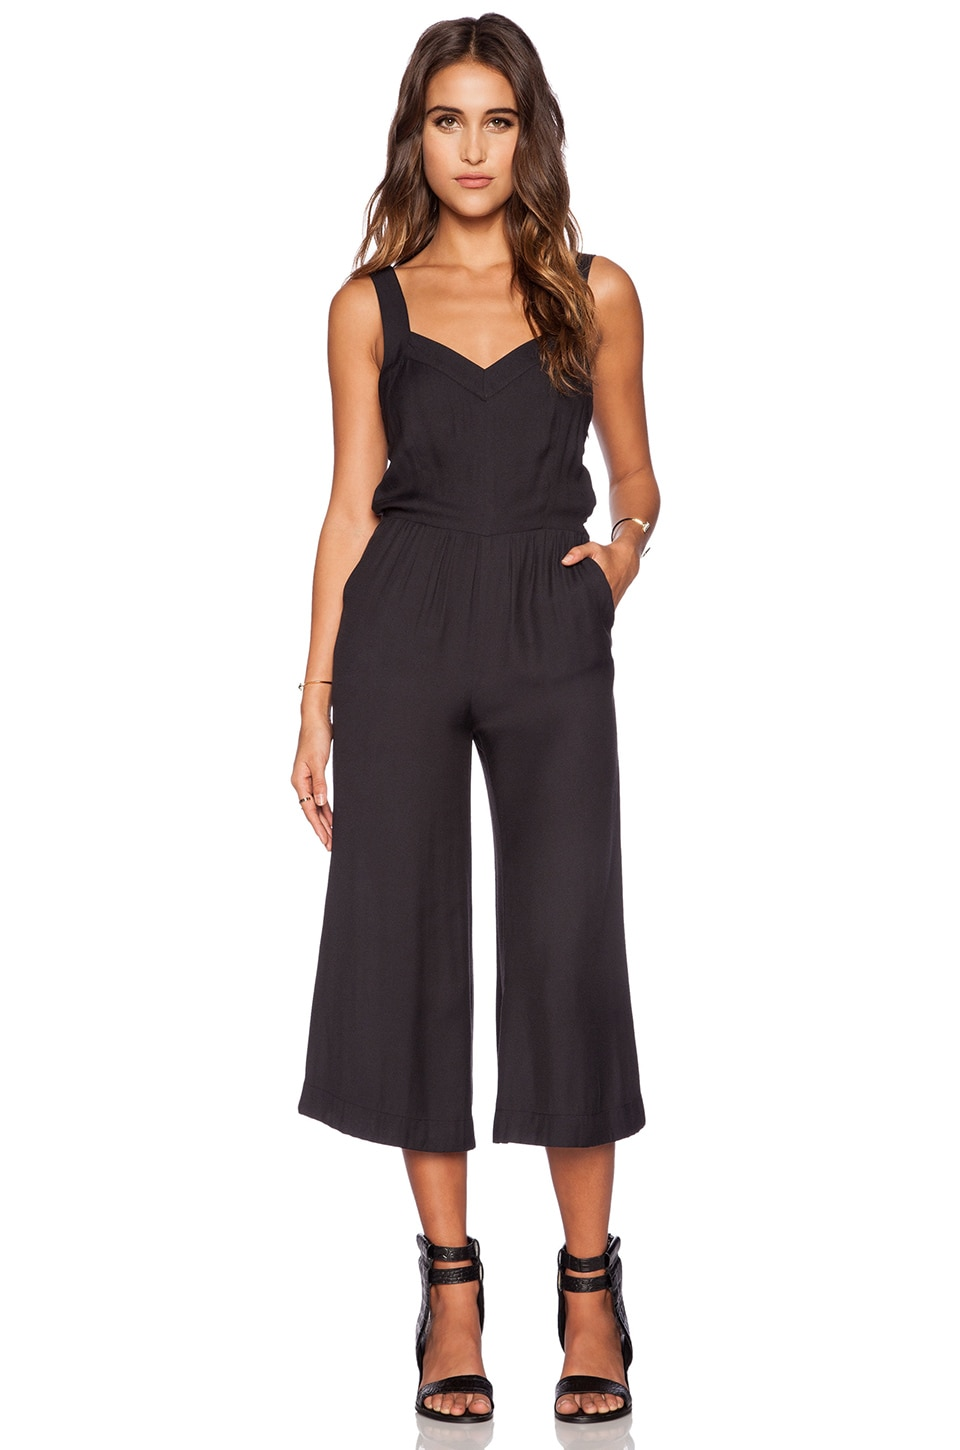 Greylin Cece Sweetheart Cullote Jumpsuit in Black